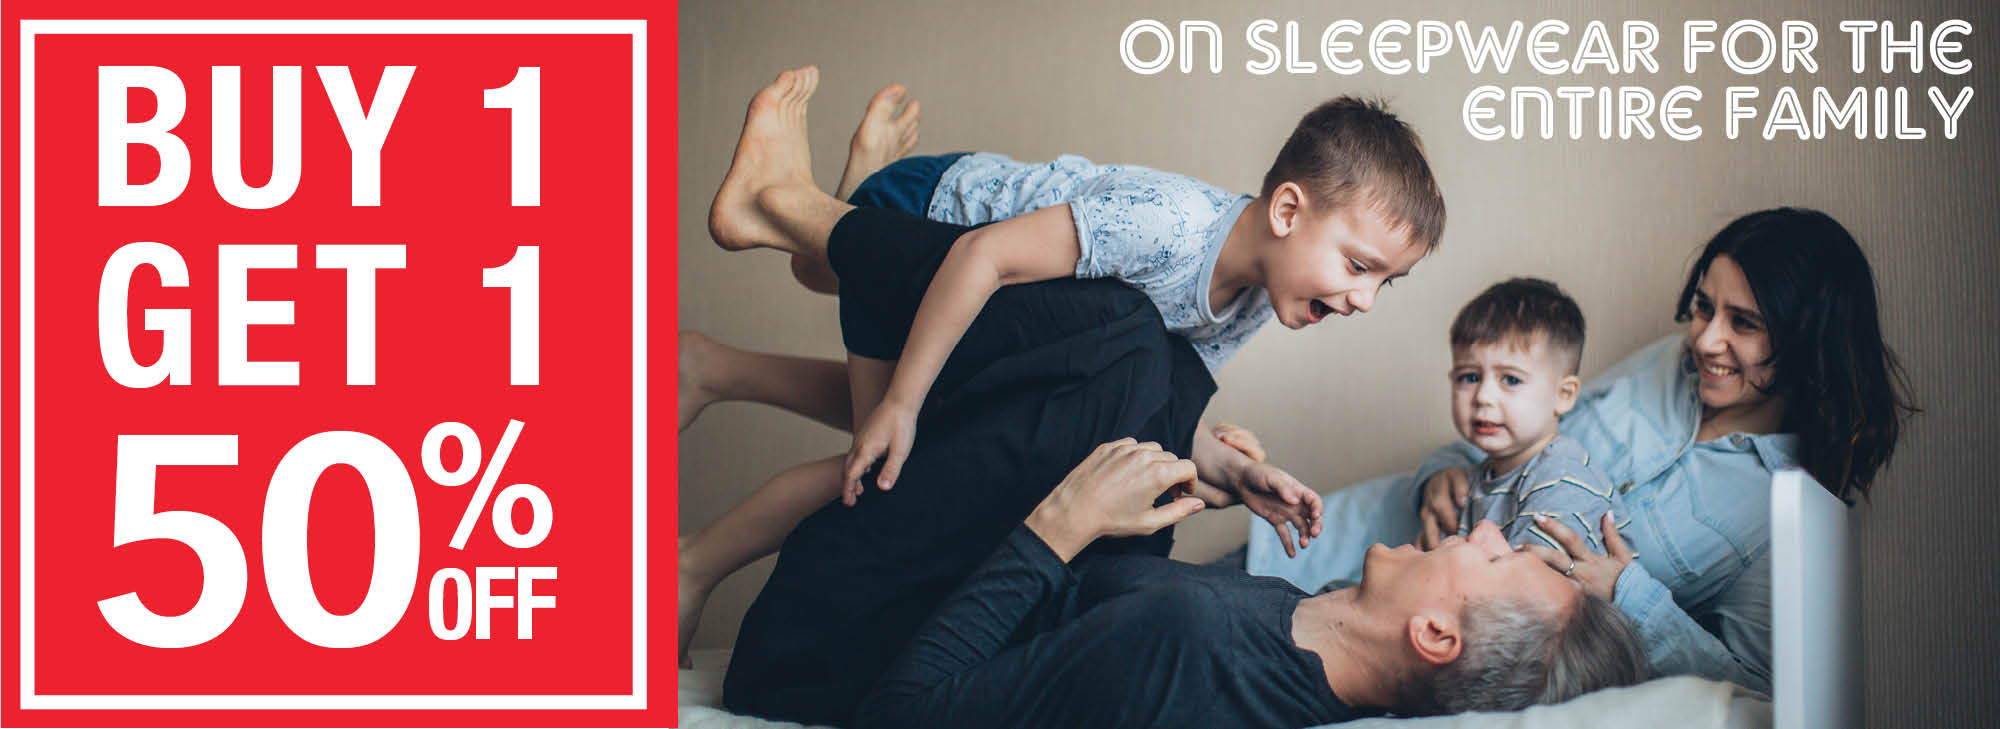 Buy one get one 50% off on all sleepwear for the entire family!